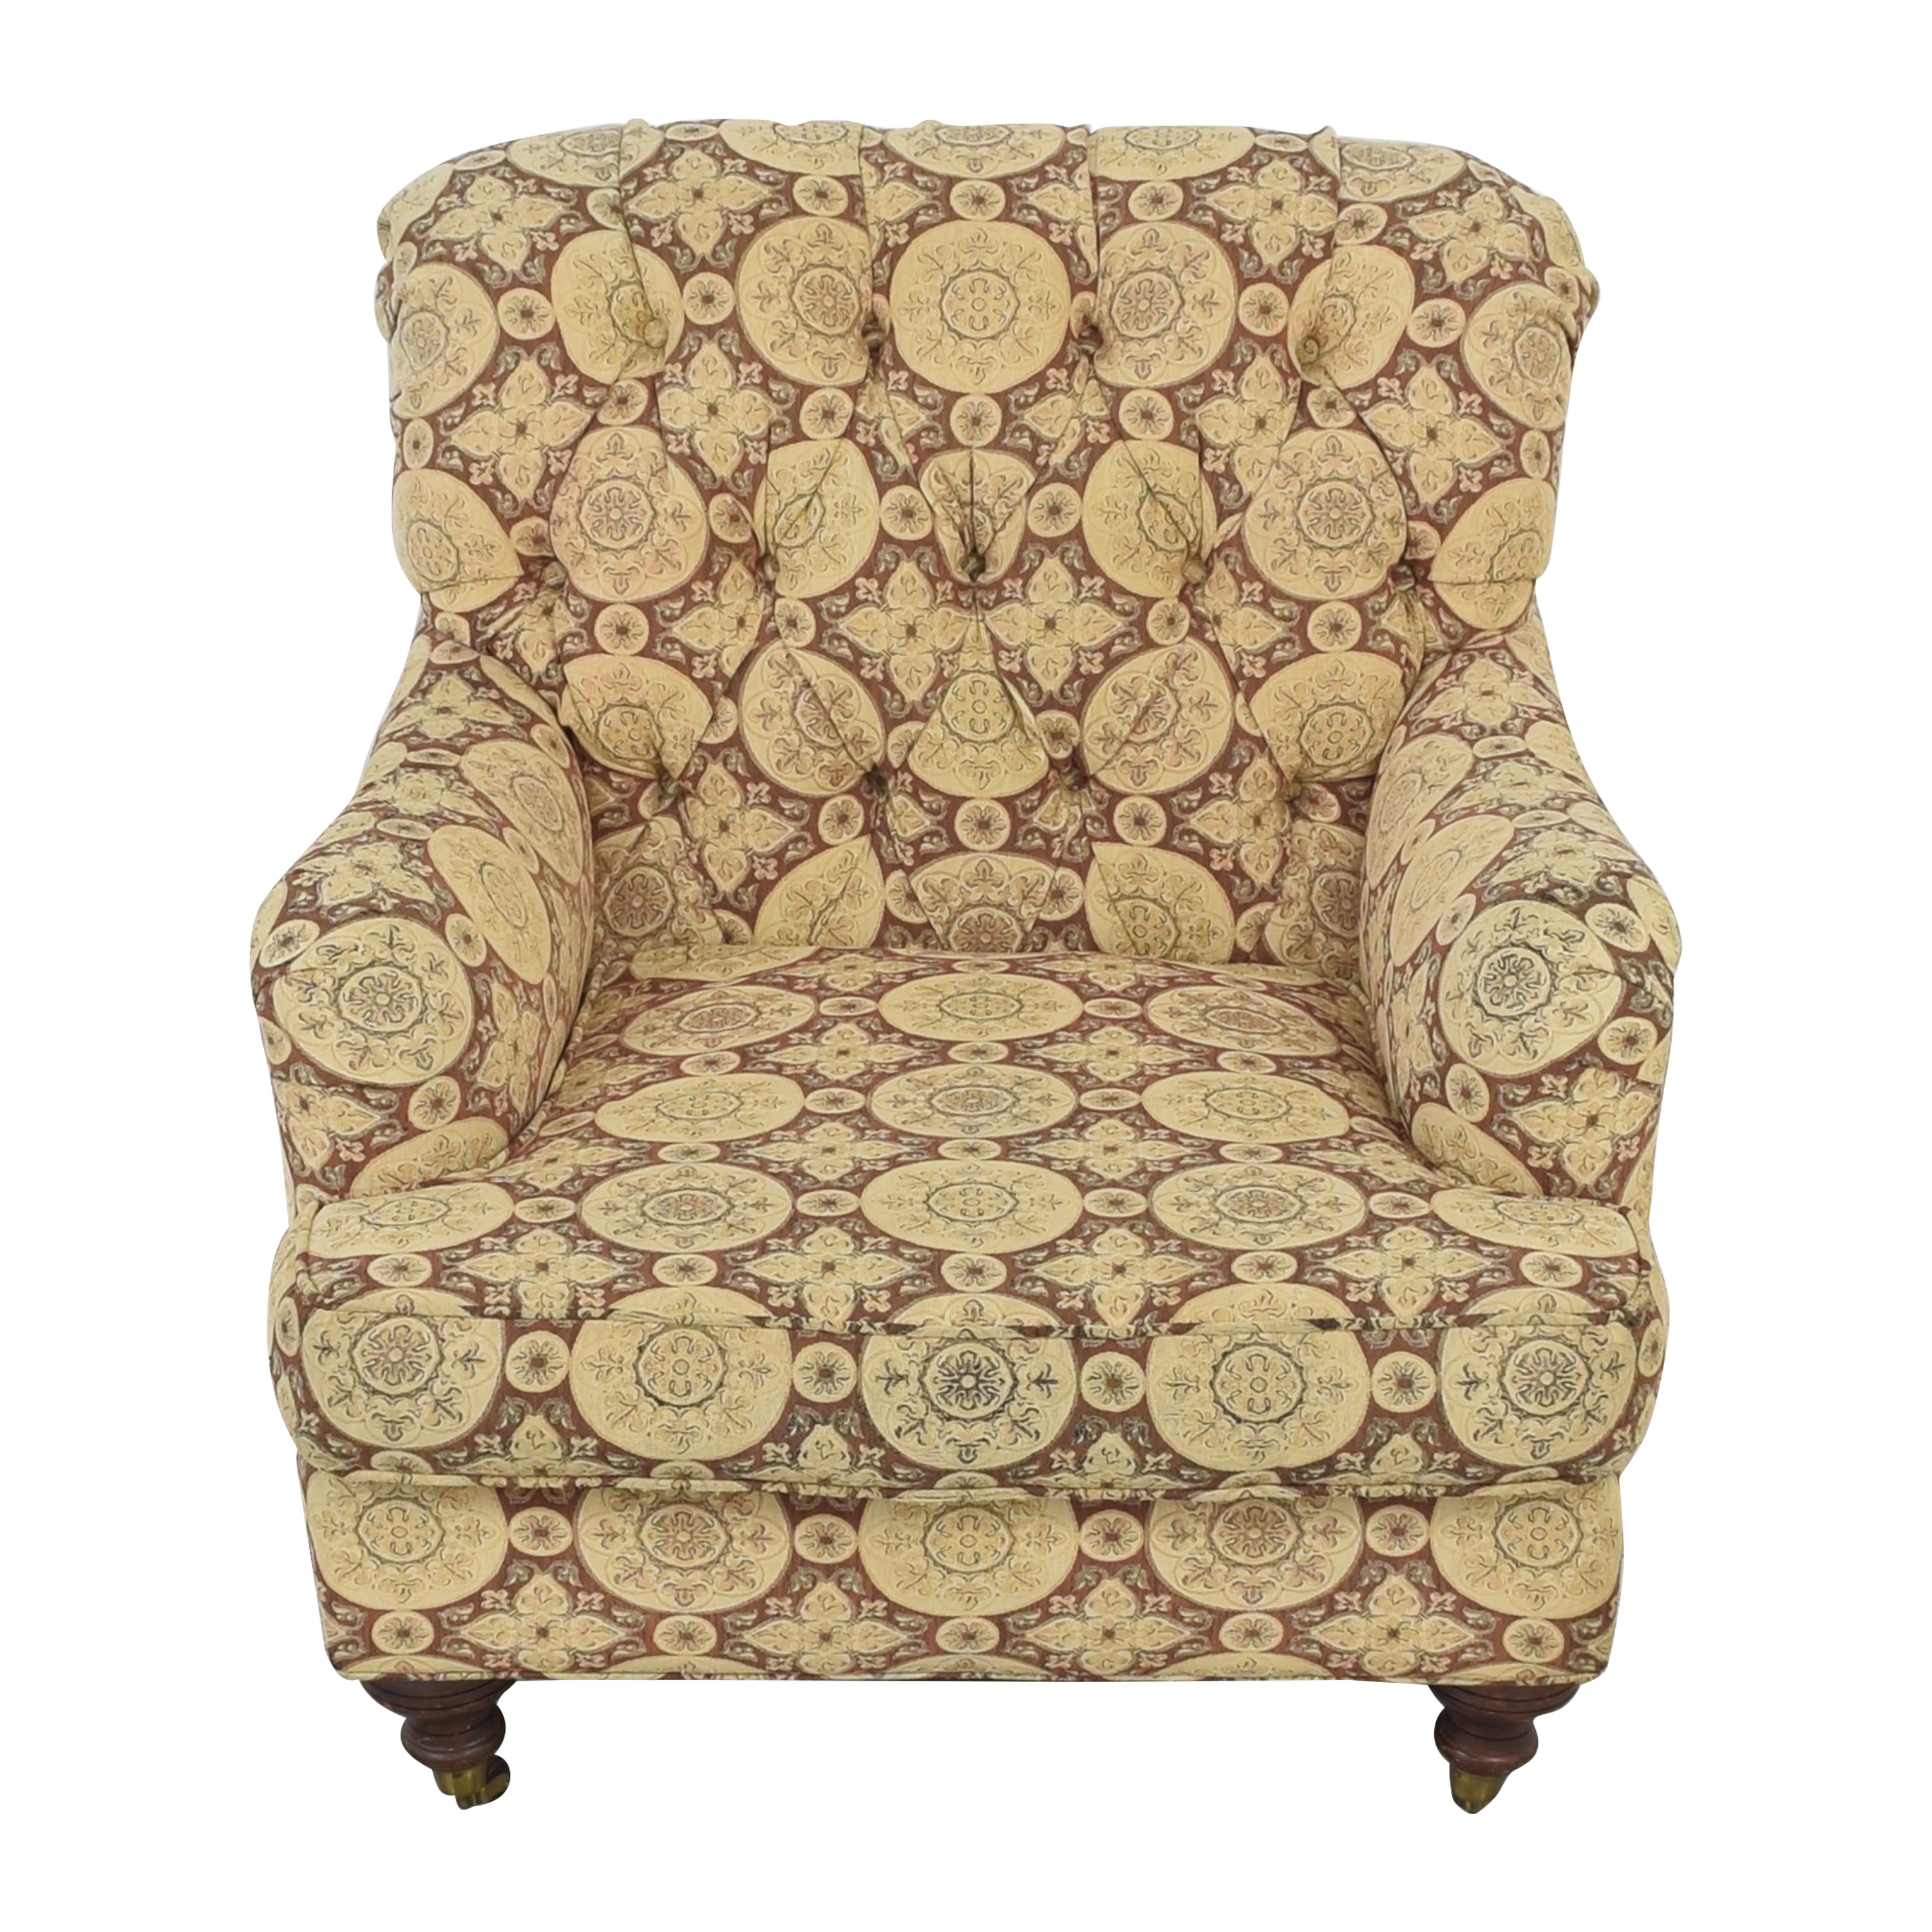 Lillian August Upholstered Arm Chair / Chairs